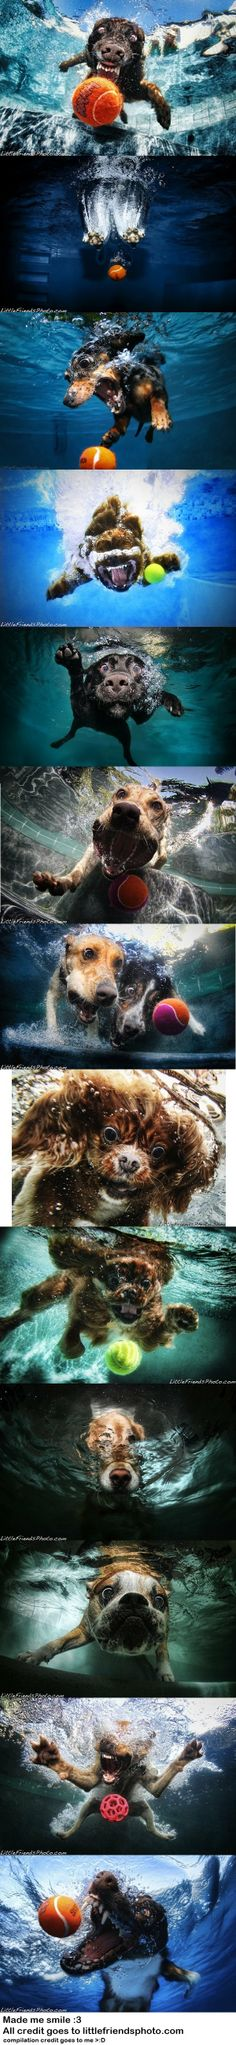 I just love the Underwater Dogs